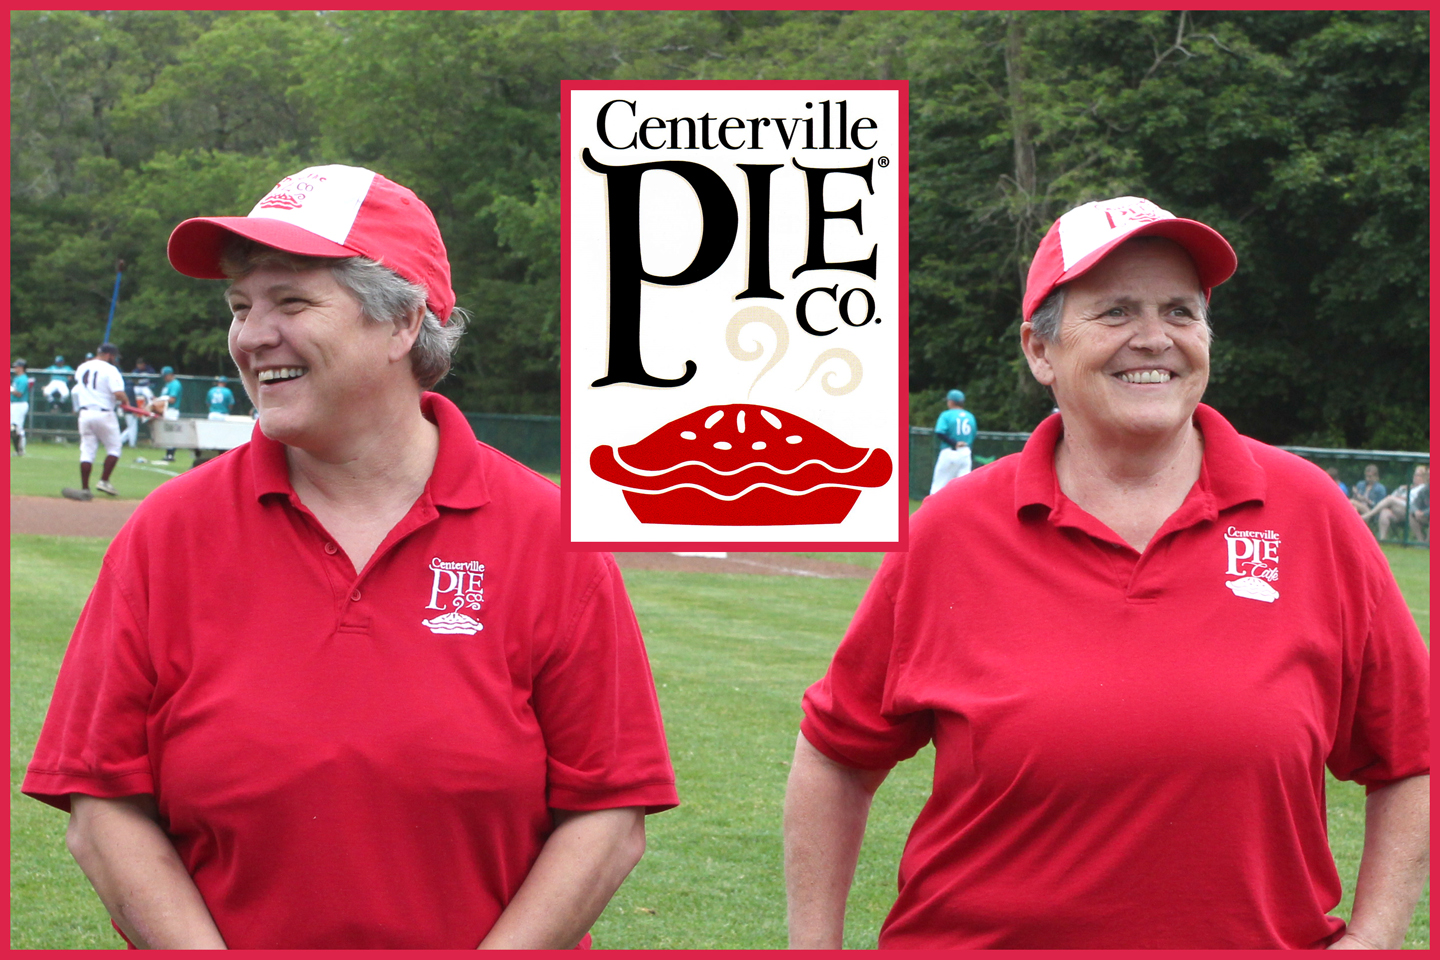 Centerville Pie Company Co-Founders